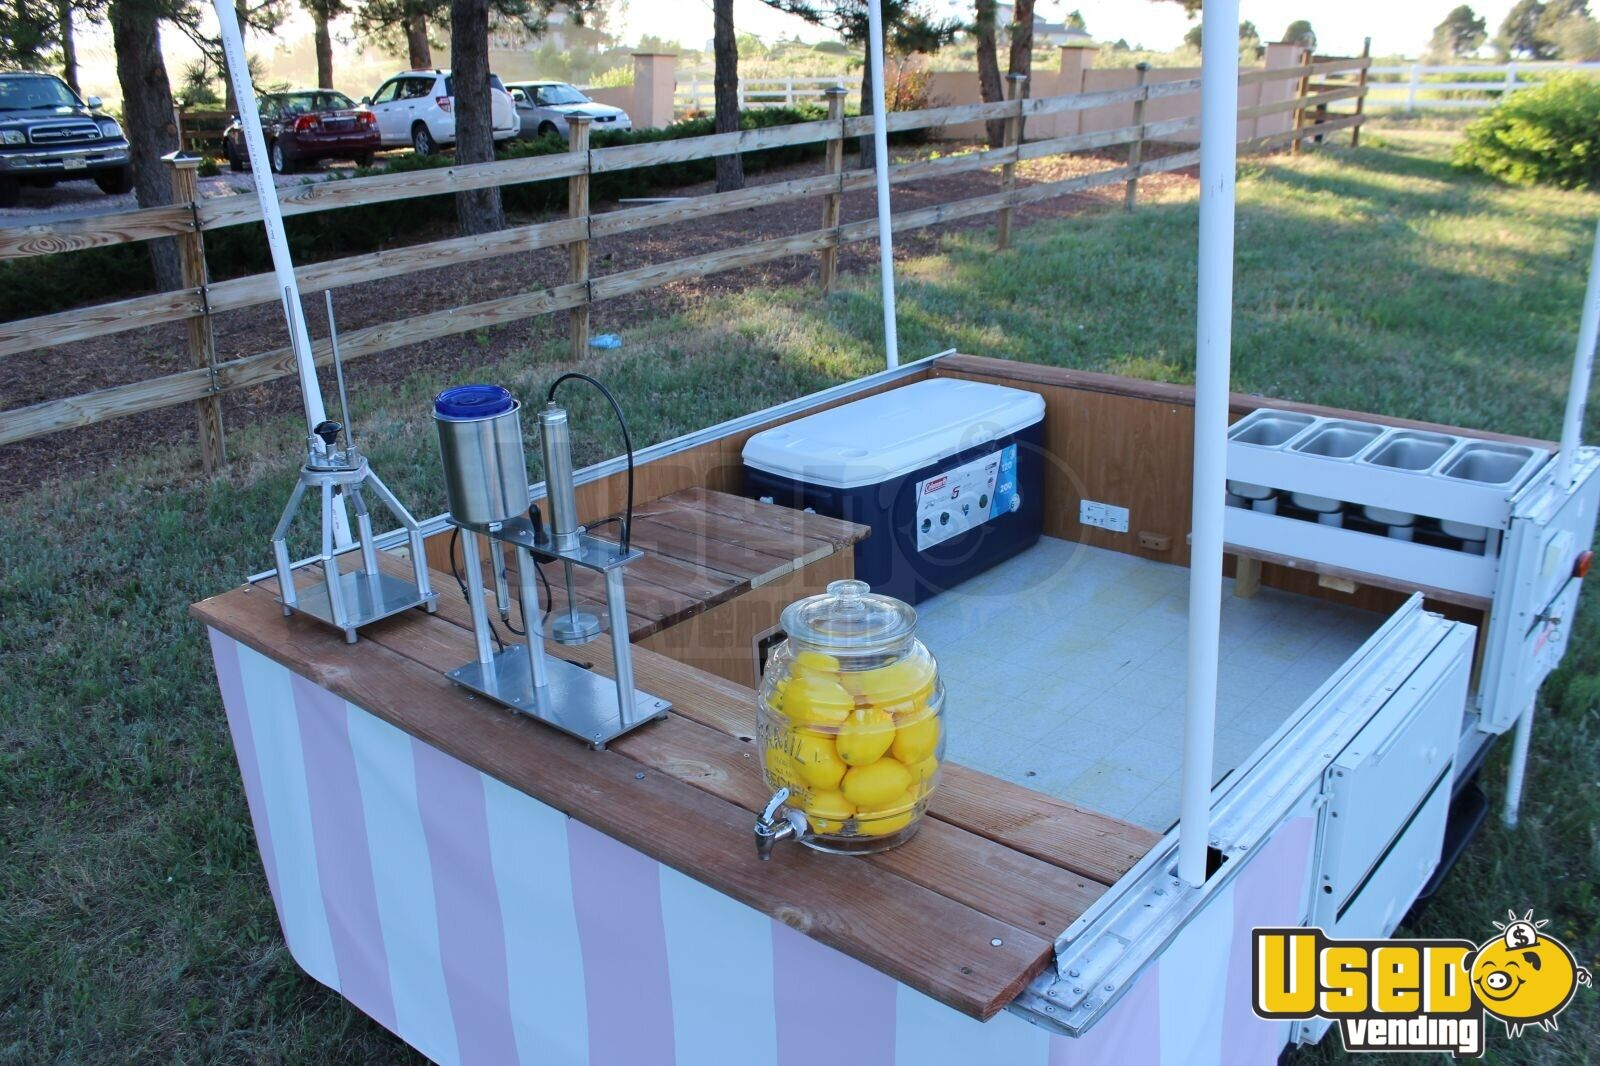 Pop-Up Lemonade Stand / Cart for Sale in Colorado!!!